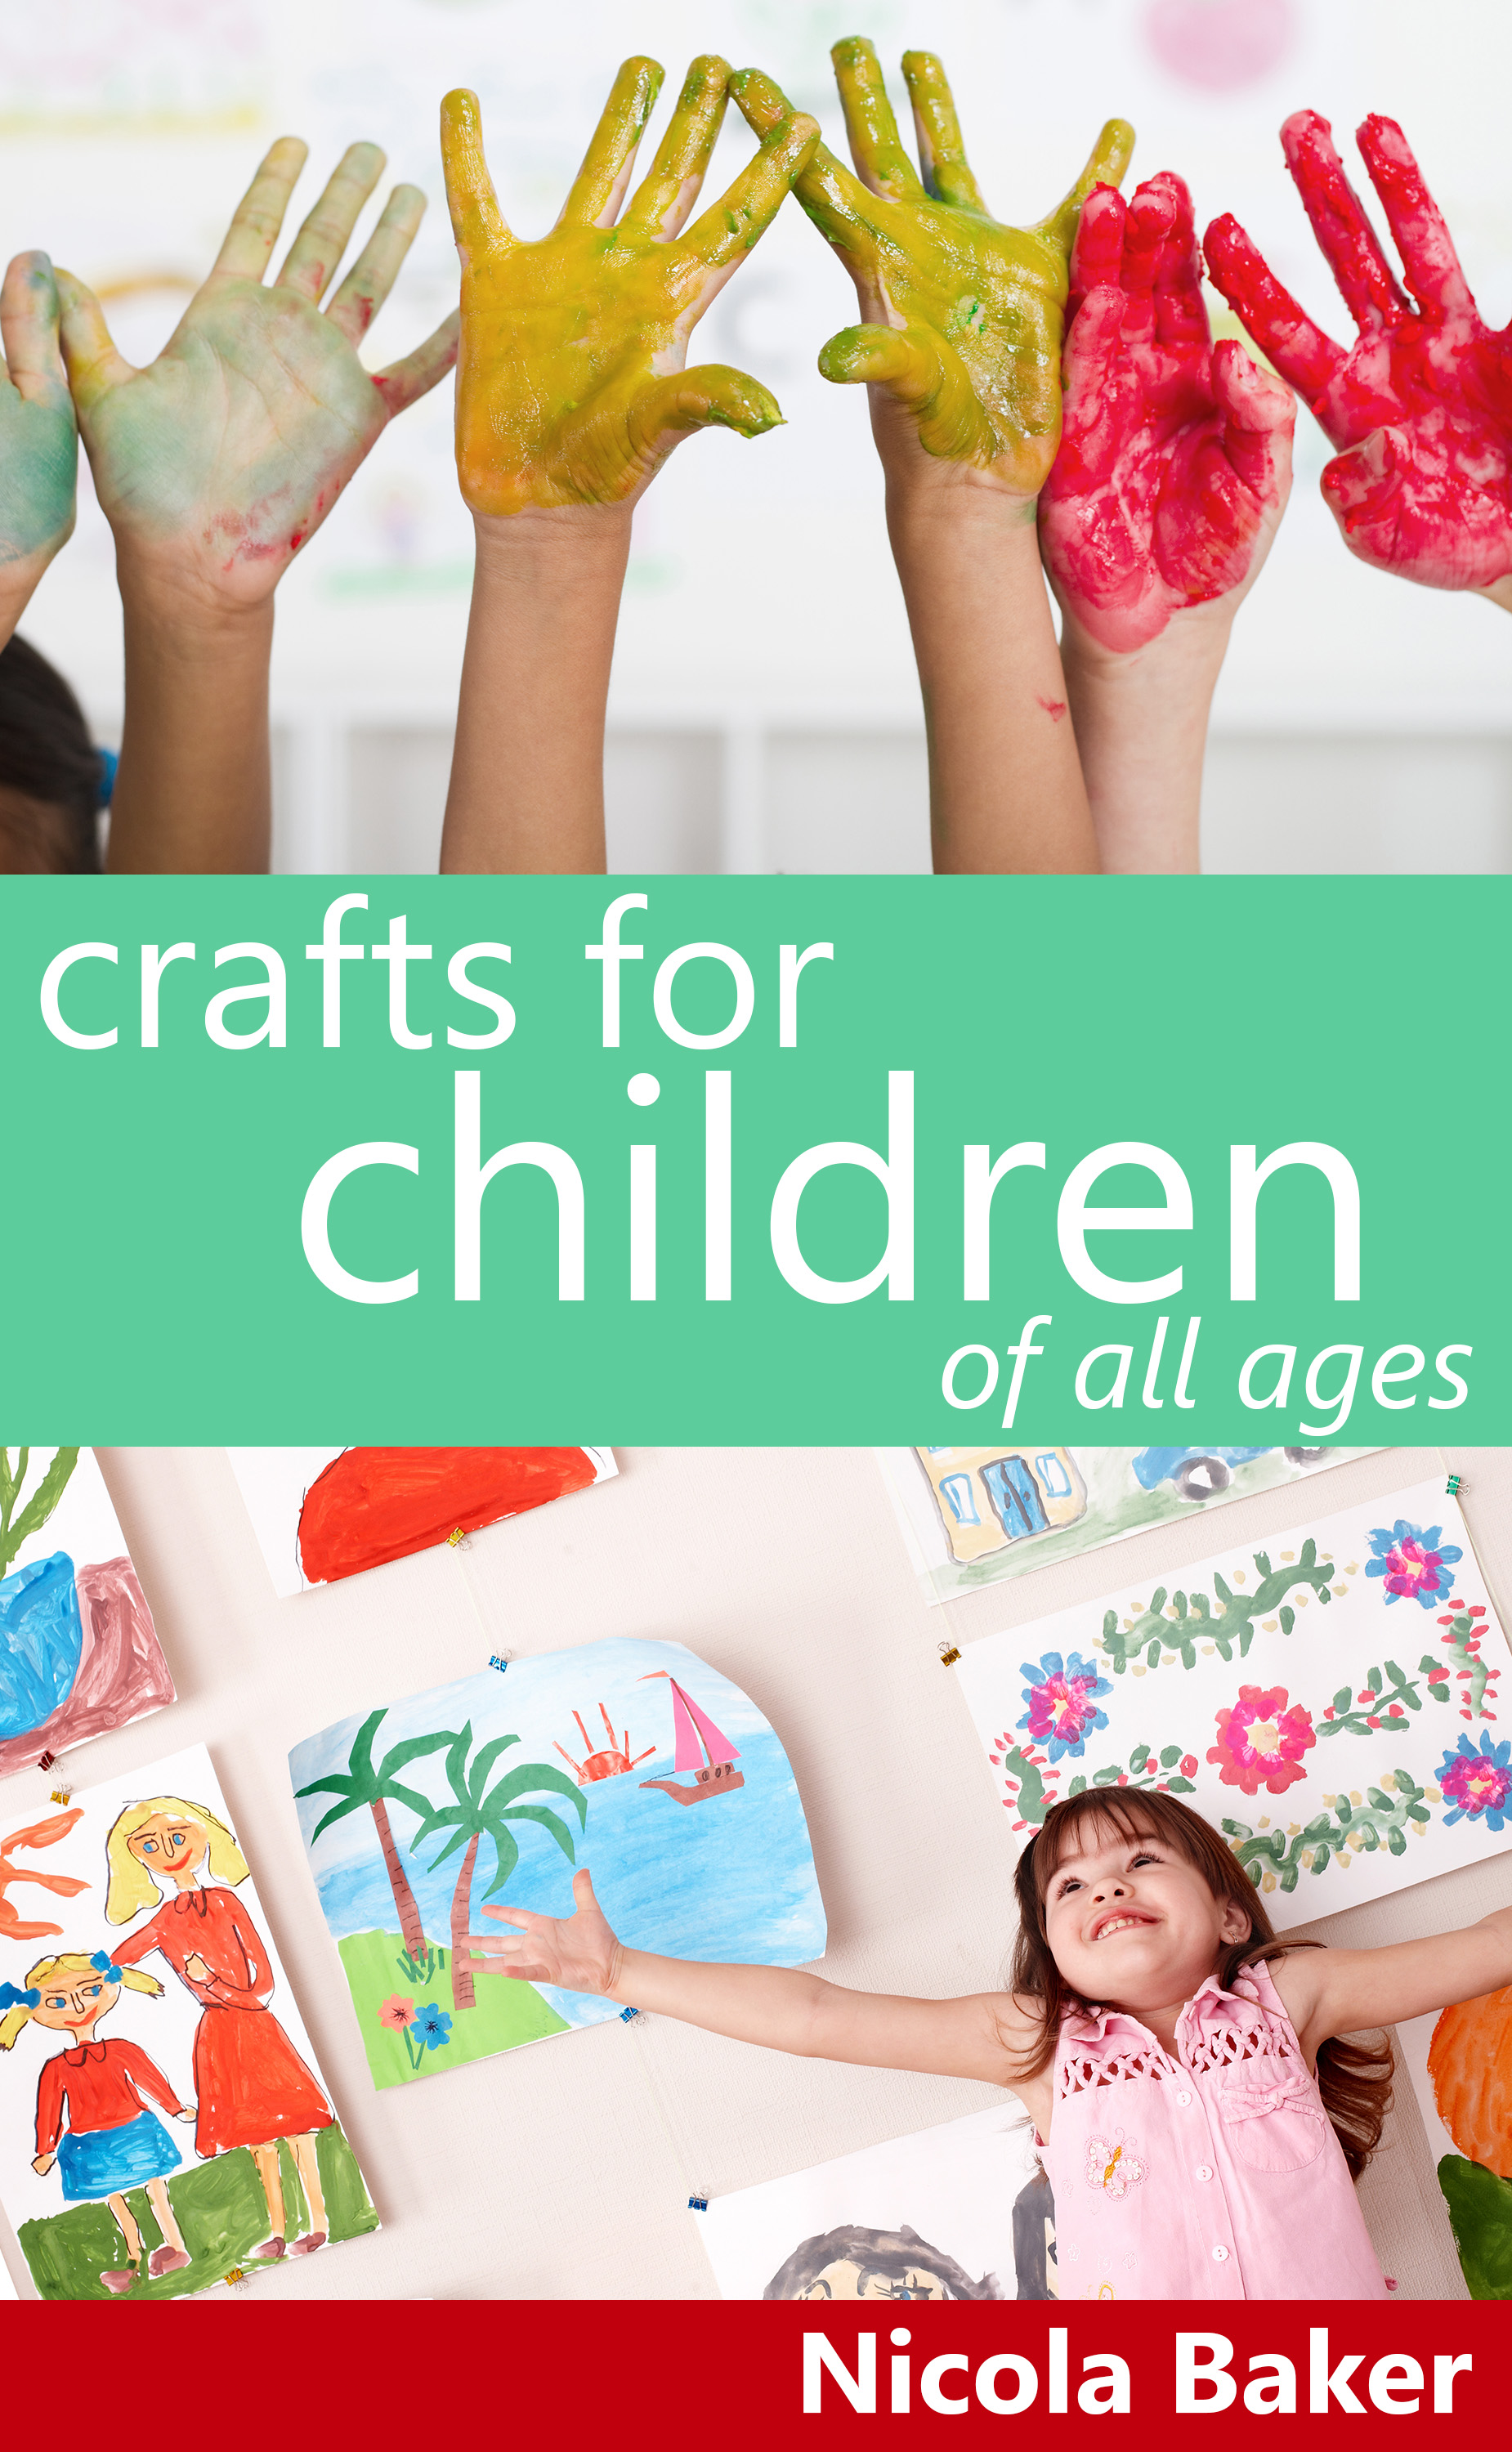 Handmade by nicola baker for Fun crafts for kids of all ages